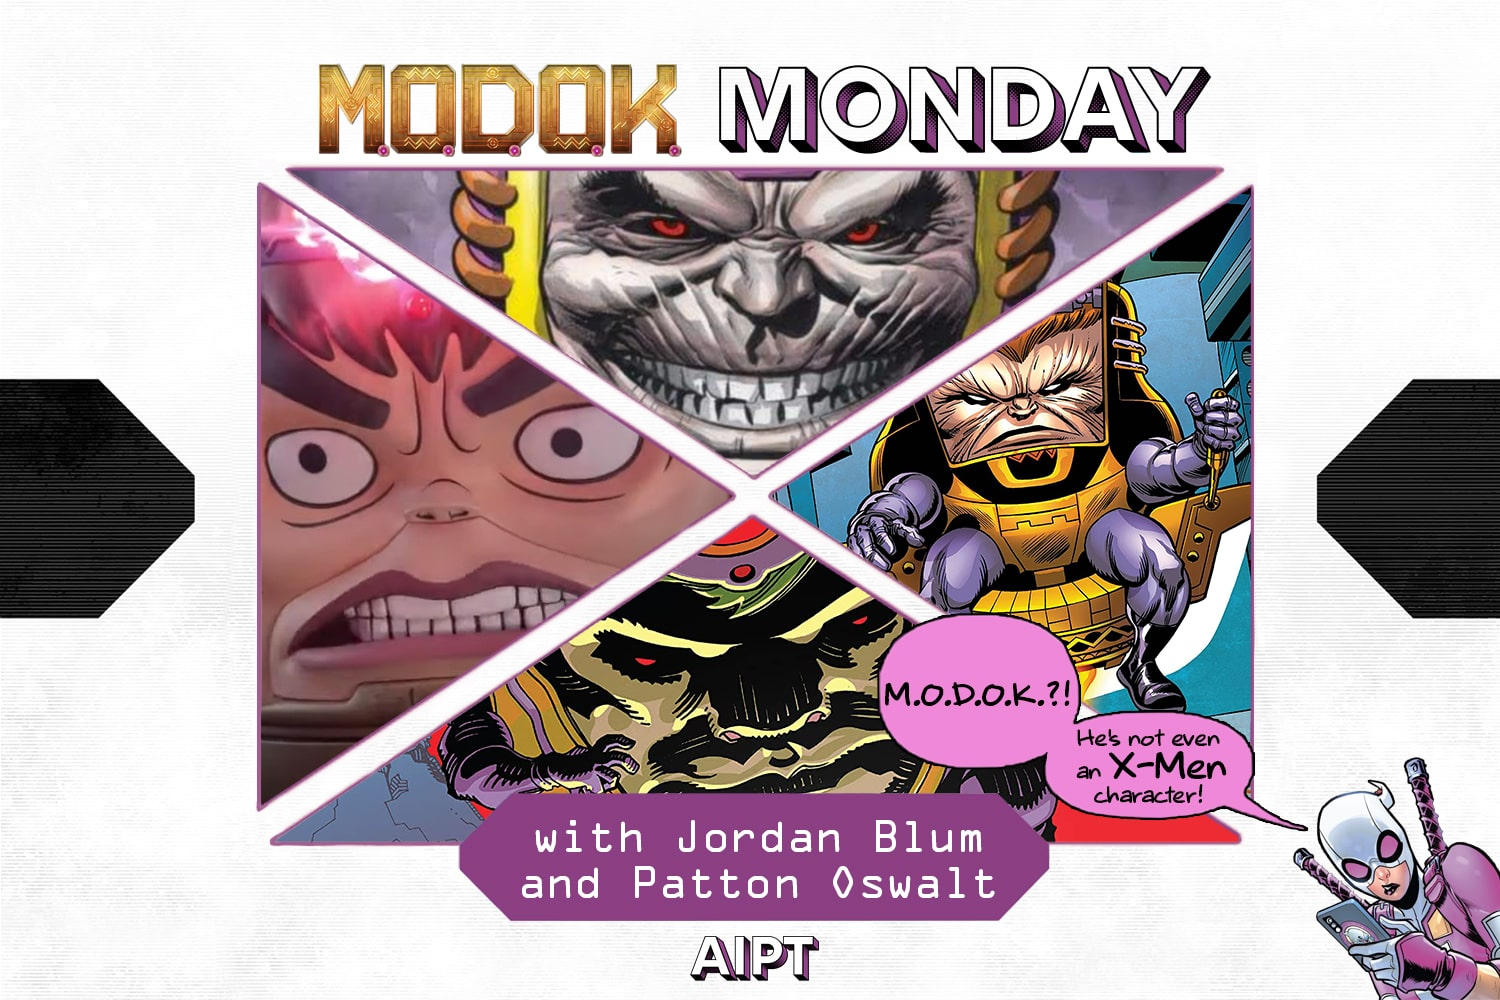 X-Men Monday #94 - M.O.D.O.K. Monday With Jordan Blum & Patton Oswalt